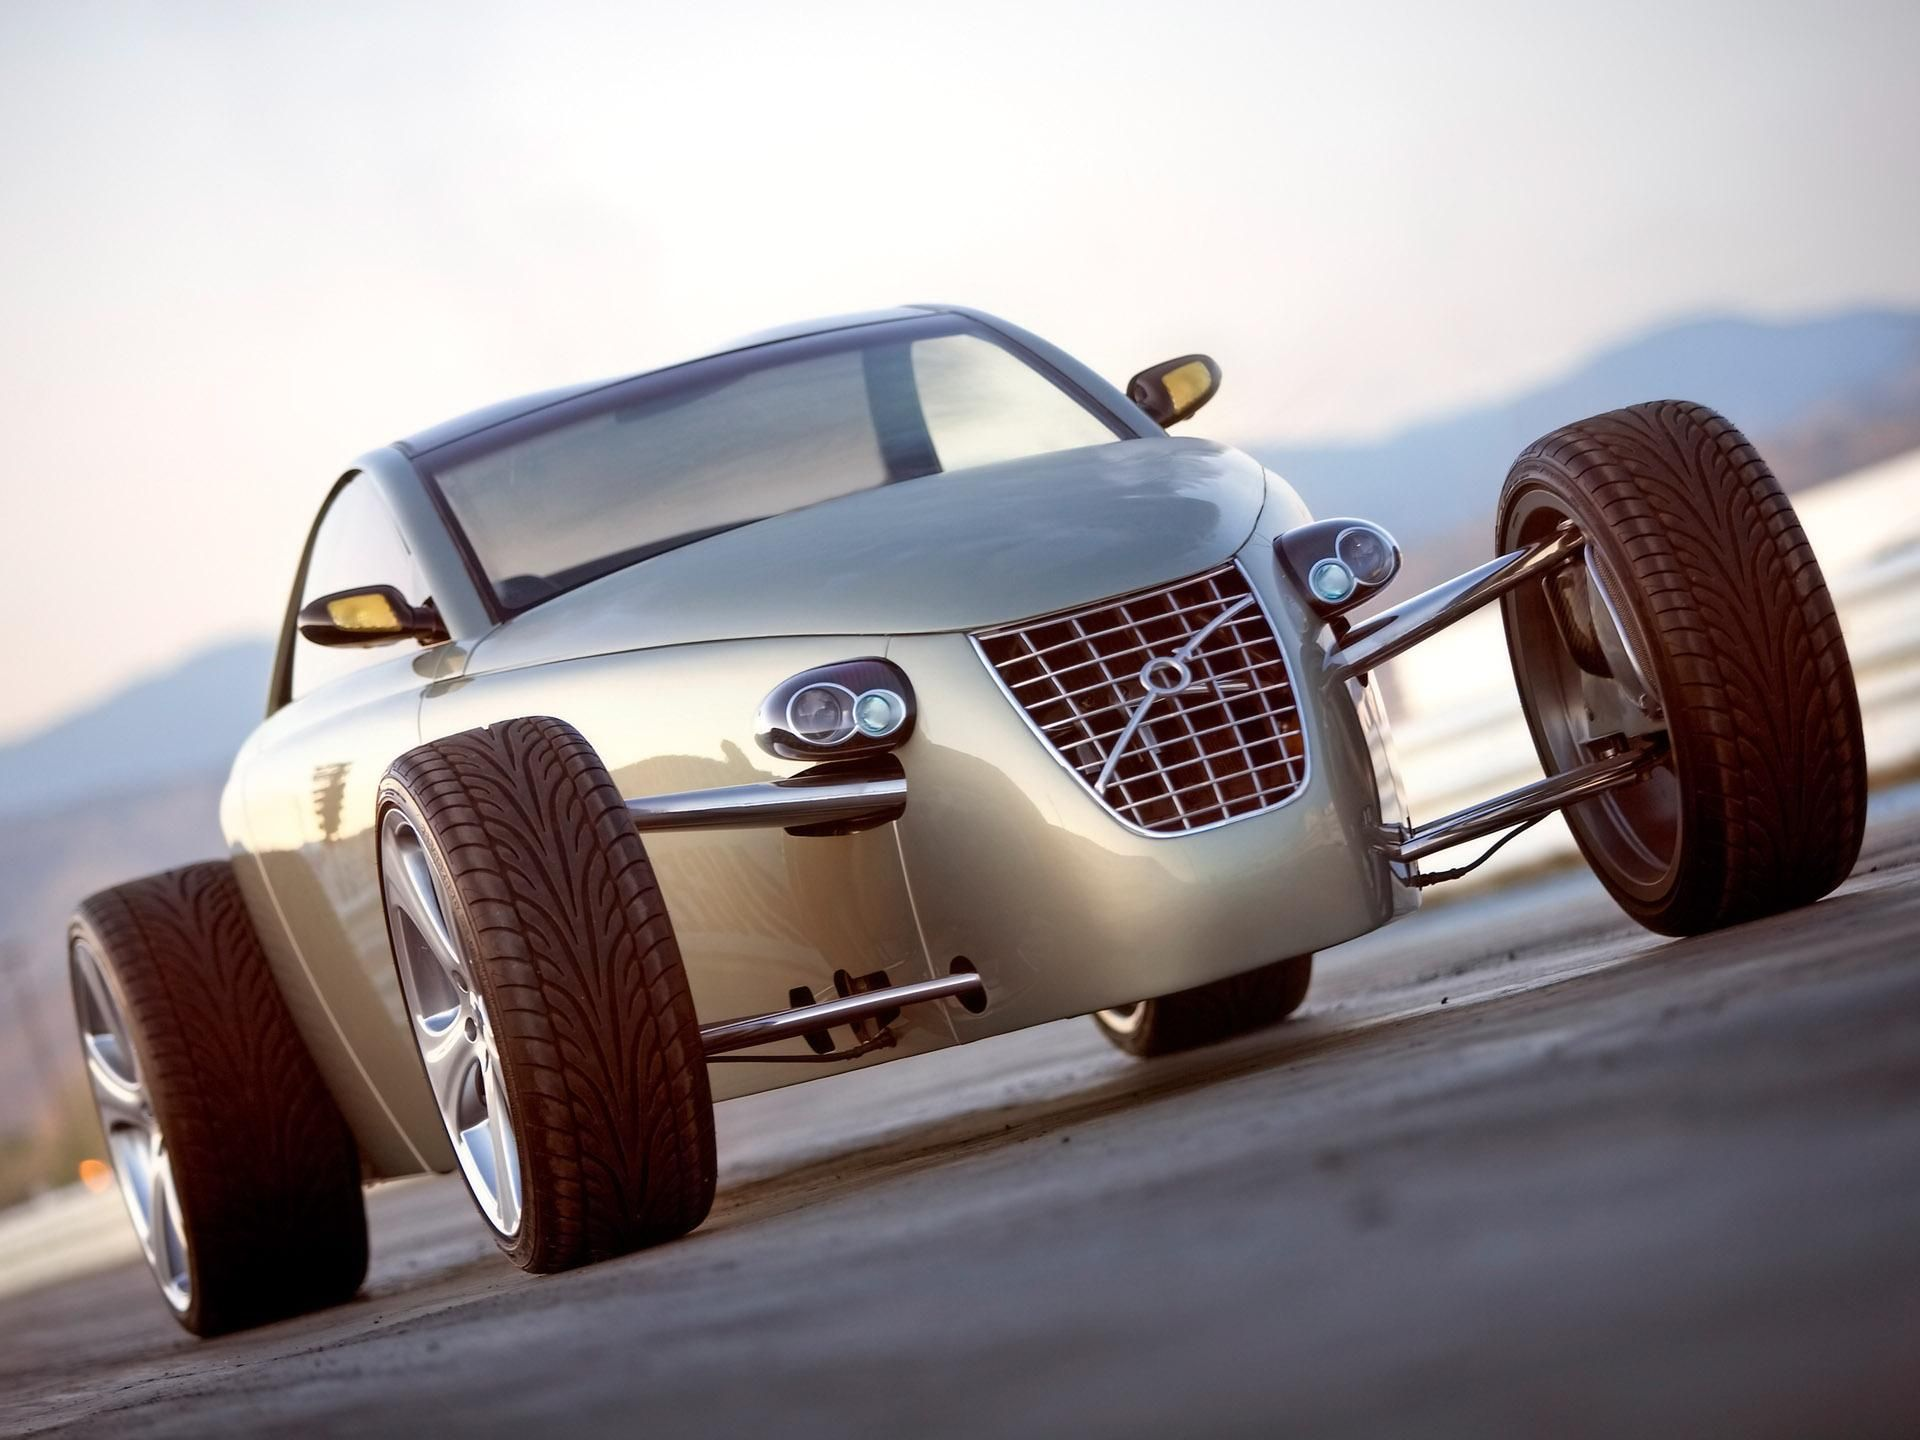 volvo t6 roadster hot rod | cool components, gadgets geeky